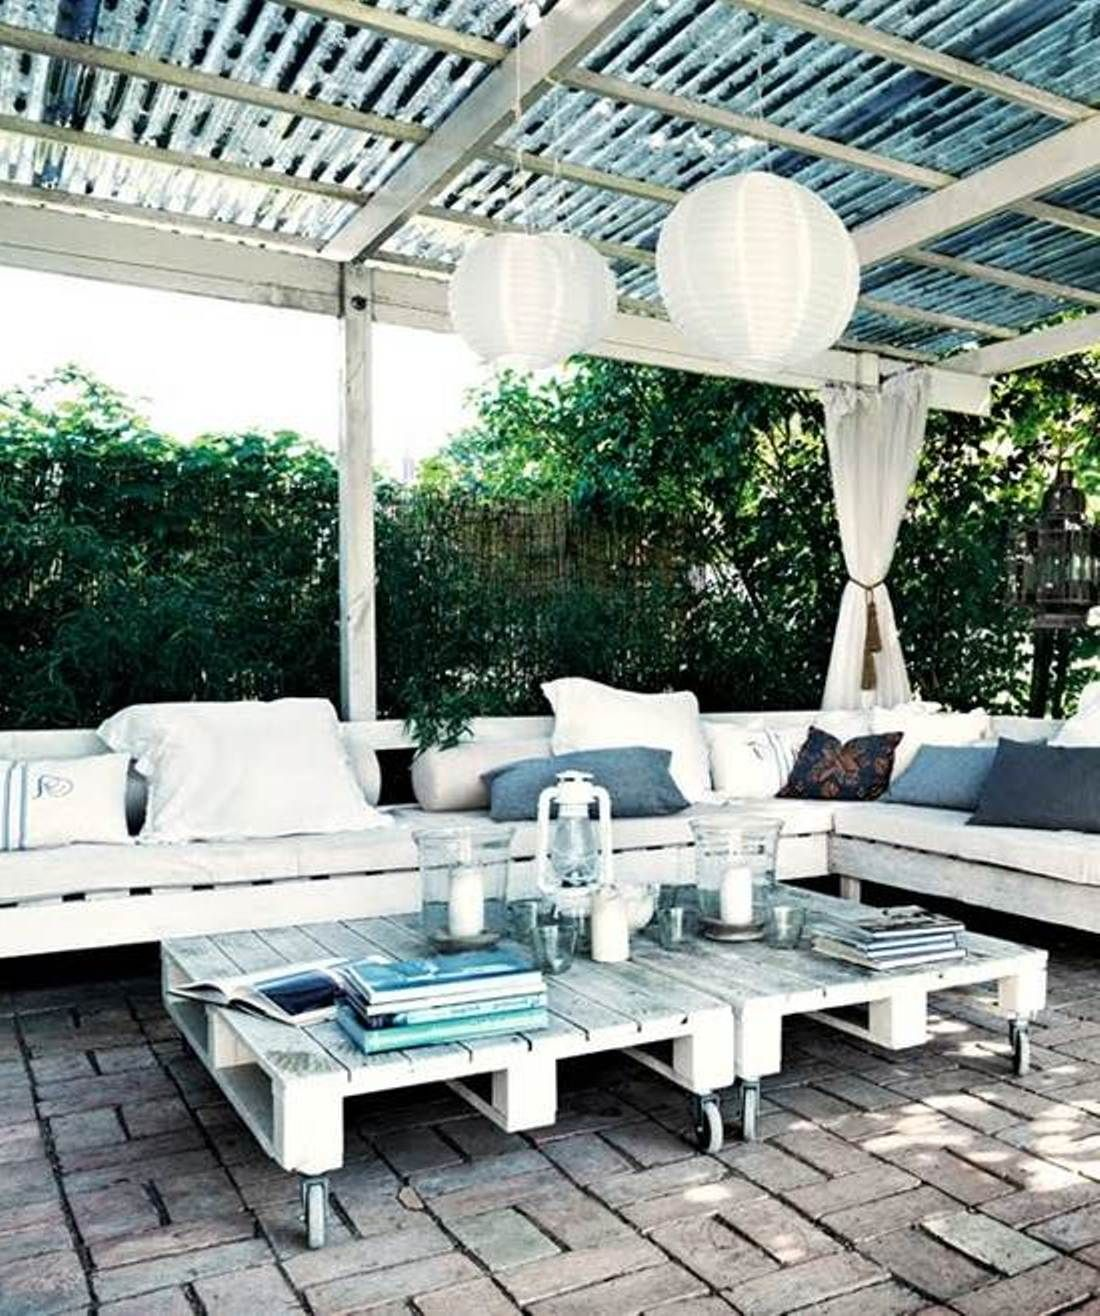 patio ideas on a budget | Plans for Patio Designs On a ...